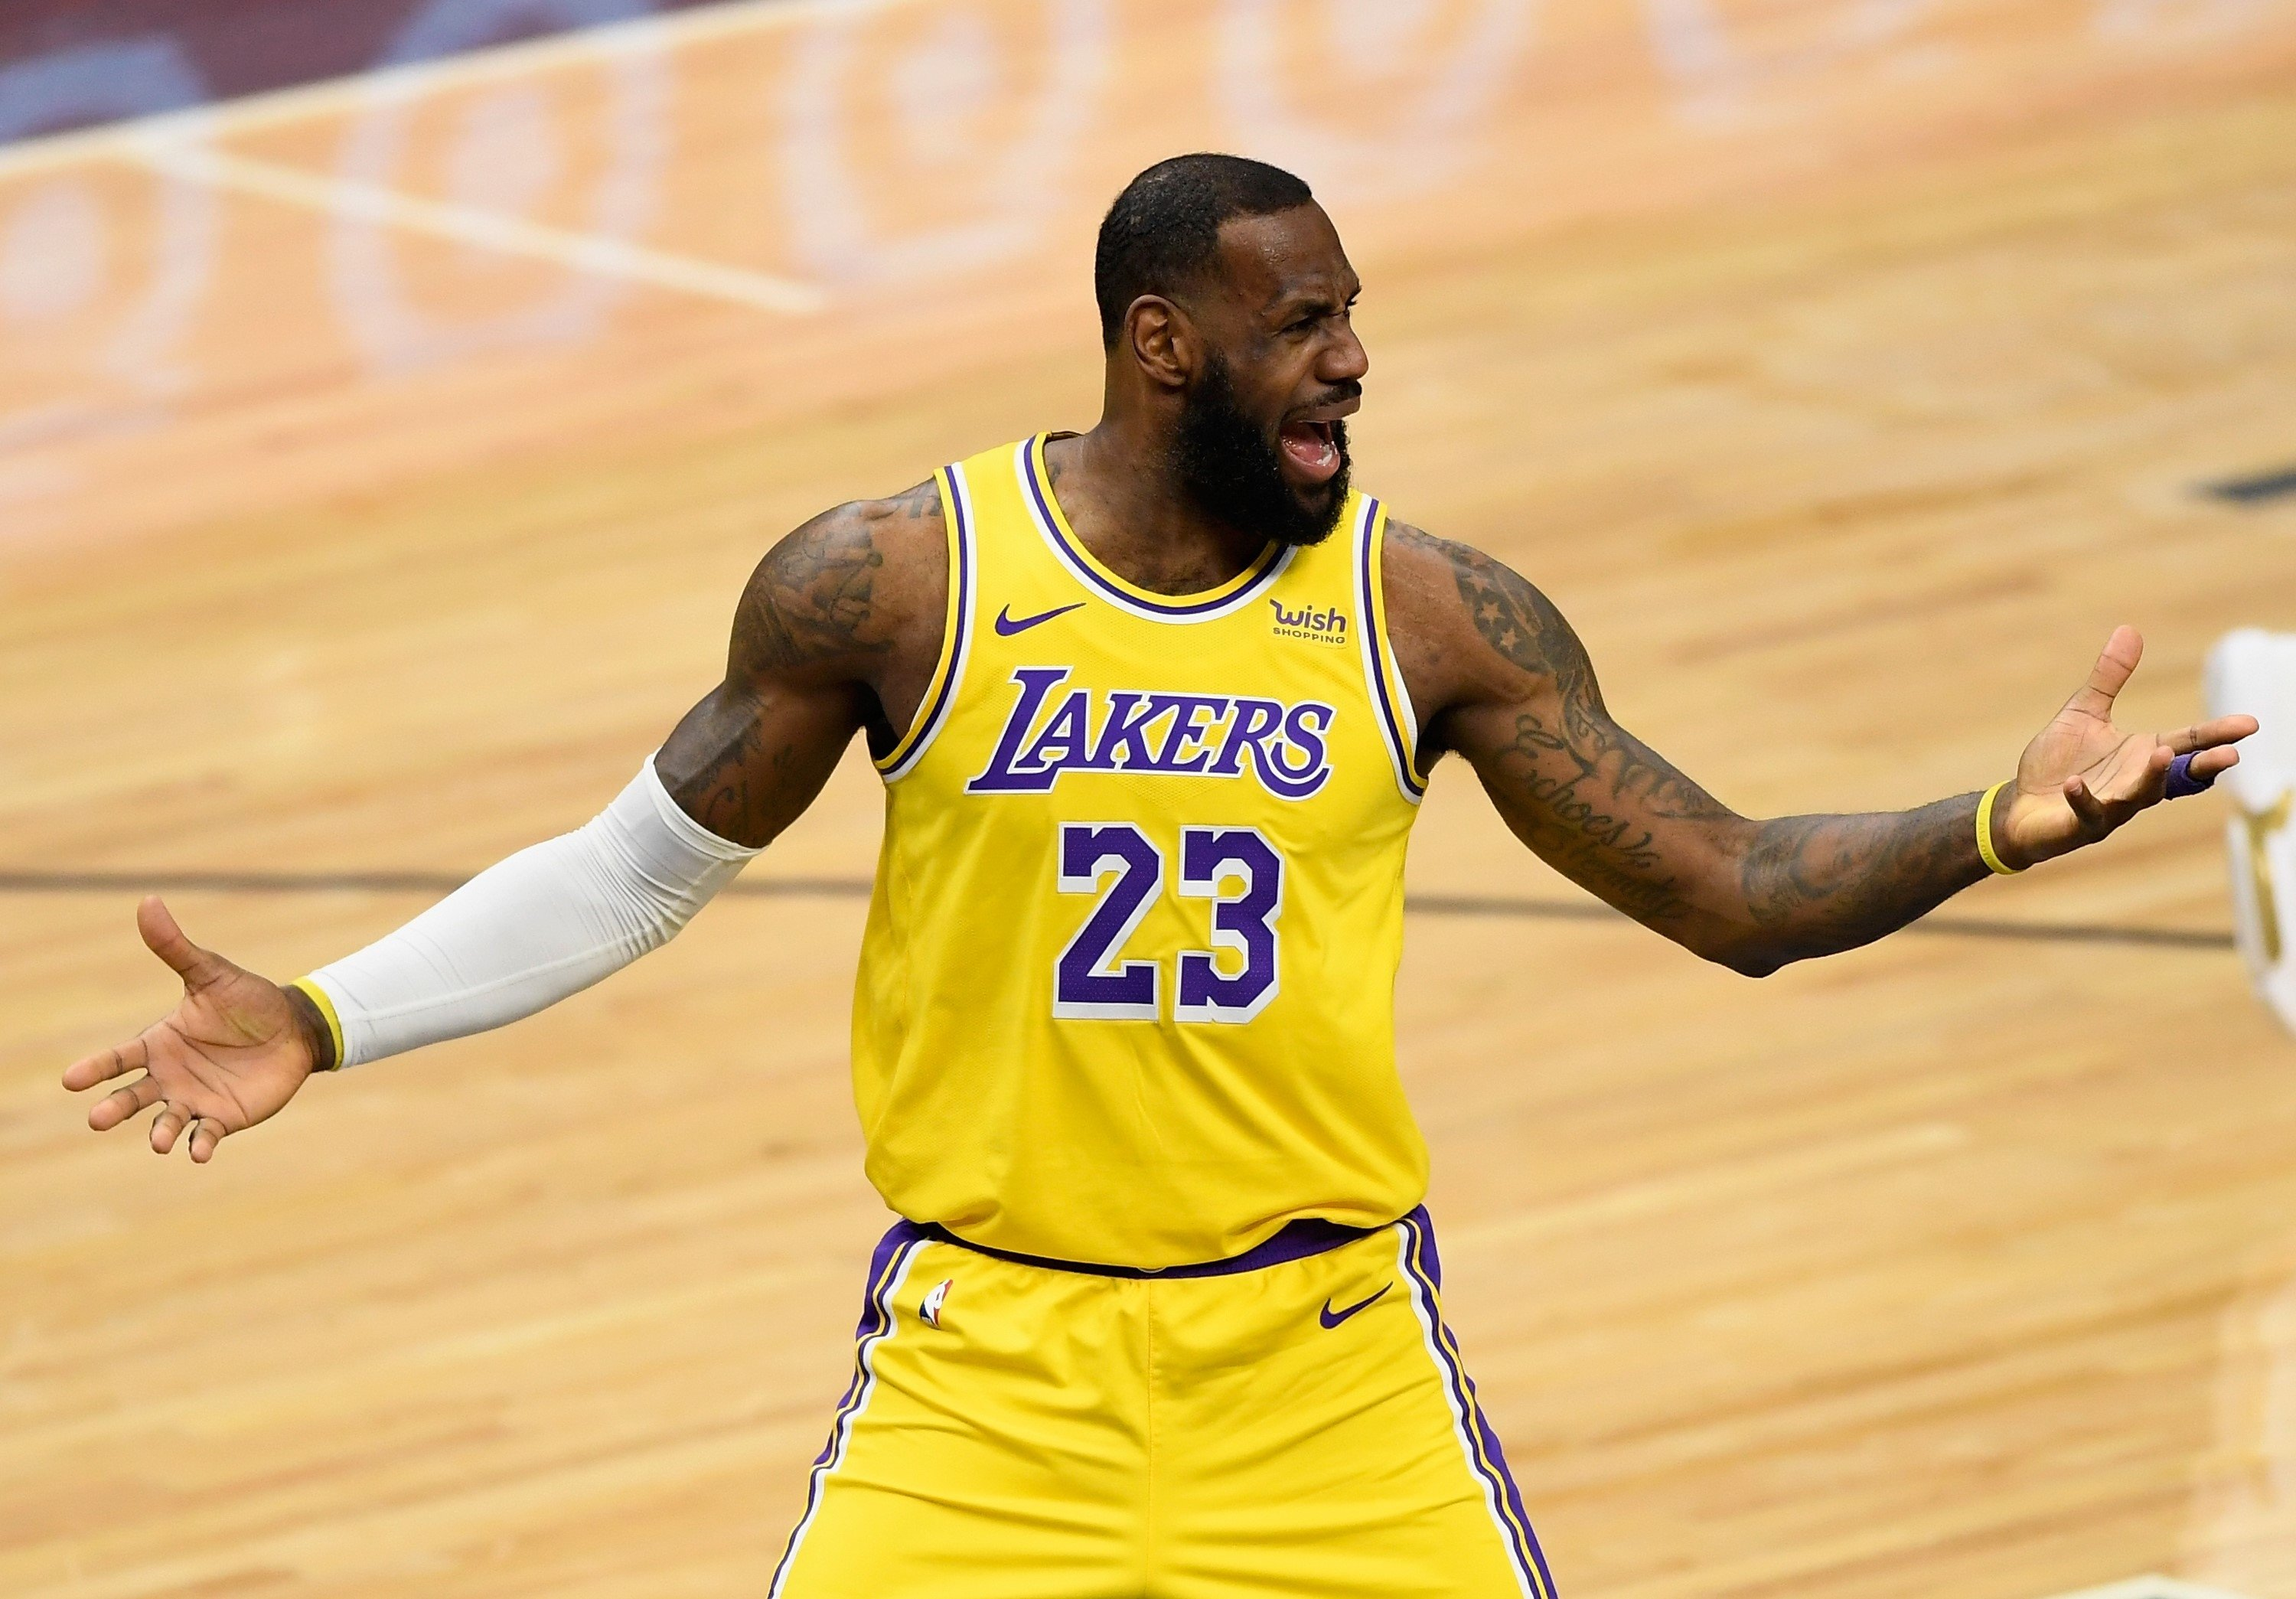 Los Angeles Lakers' LeBron James reacts during the game against Minnesota Timberwolves at Target Center, Minneapolis, Minnesota, Feb. 16, 2021. (AFP Photo)